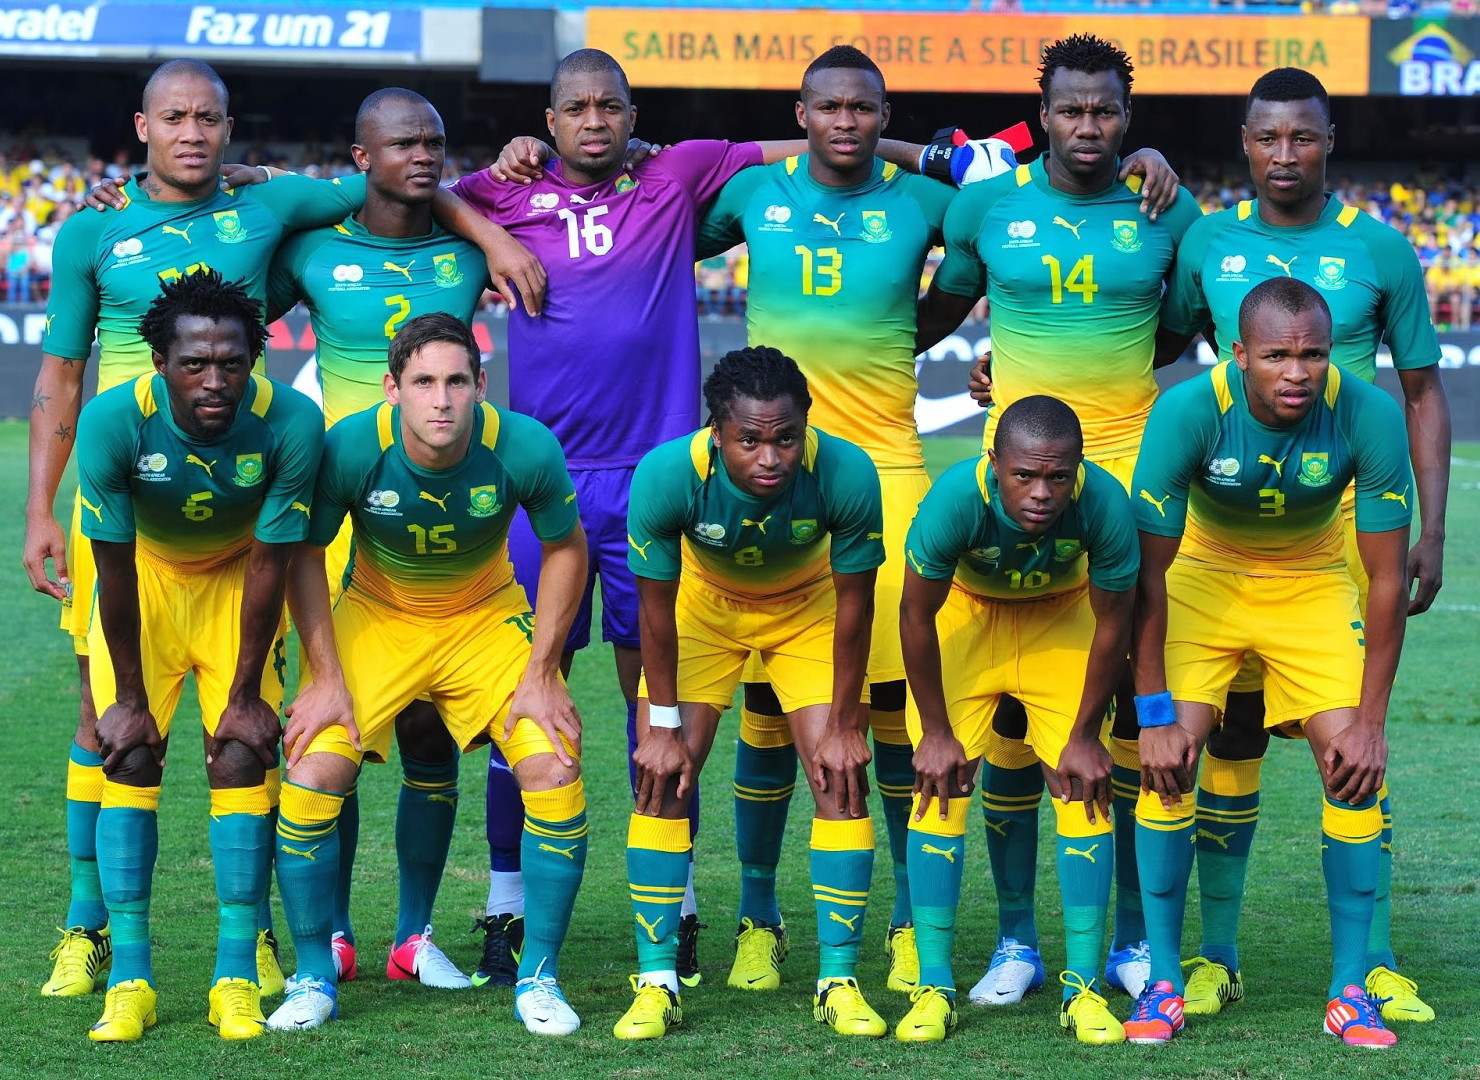 South Africa-12-13-PUMA-away-kit-green-yellow-green-line-up.jpg